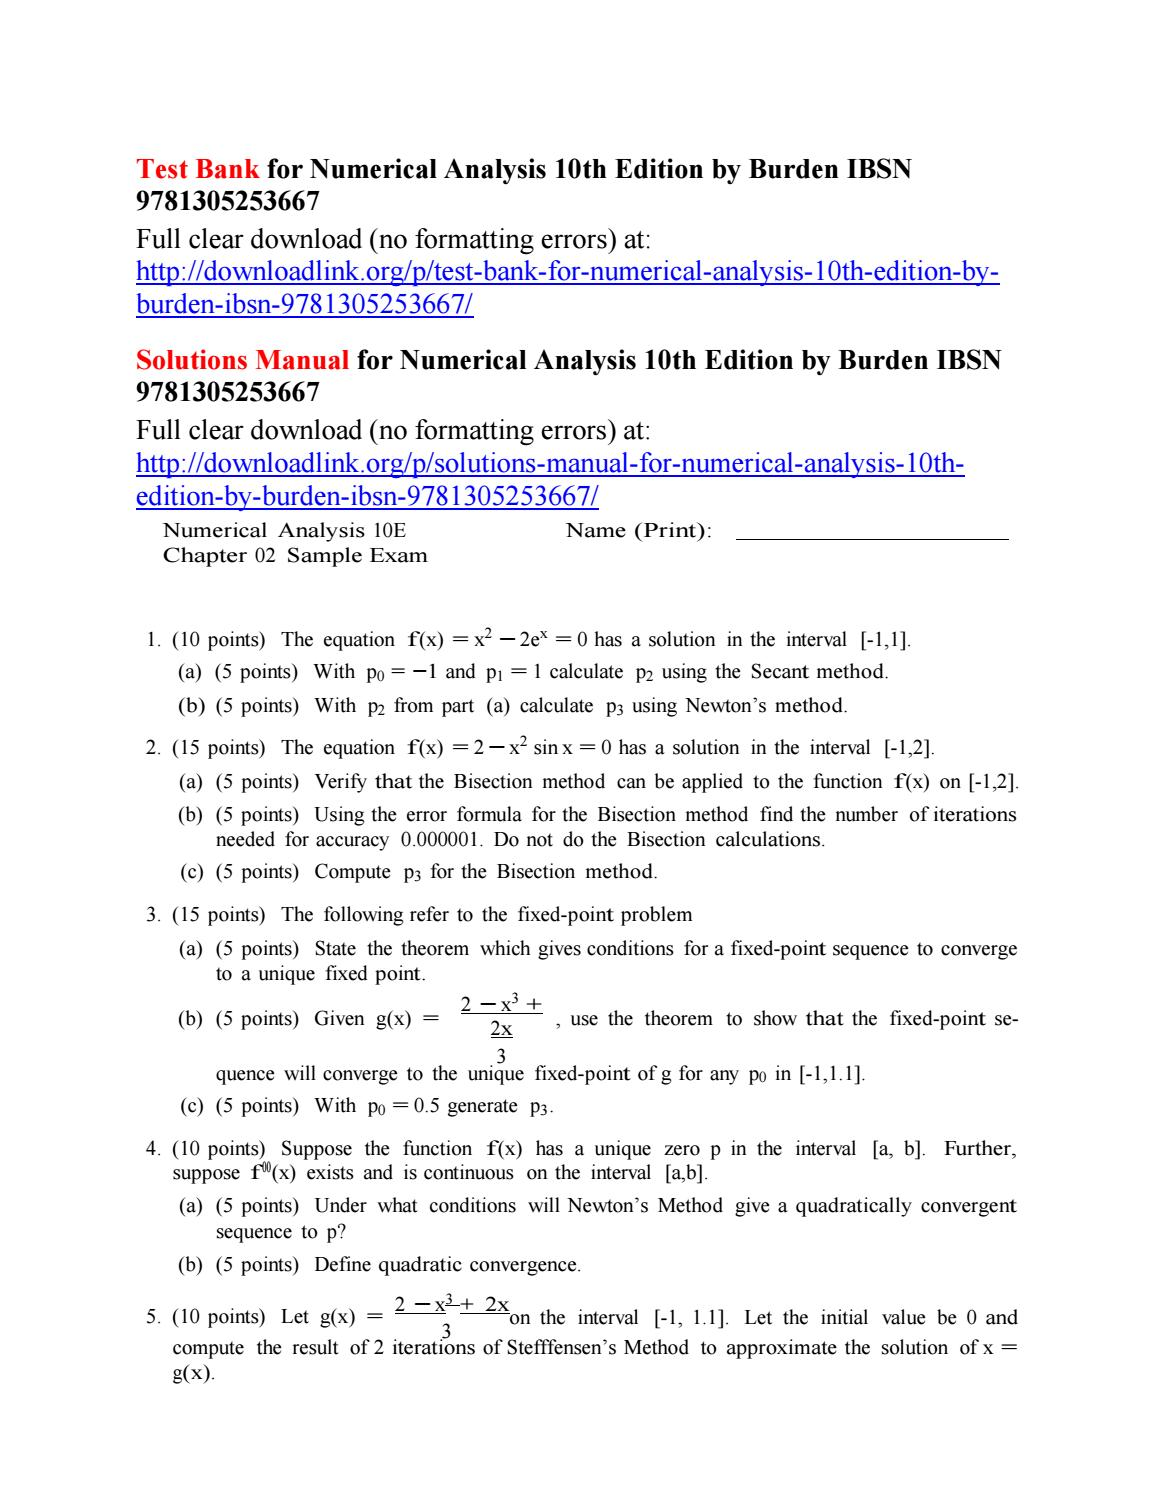 Test bank for numerical analysis 10th edition by burden ibsn 9781305253667  by Griffin7423 - issuu